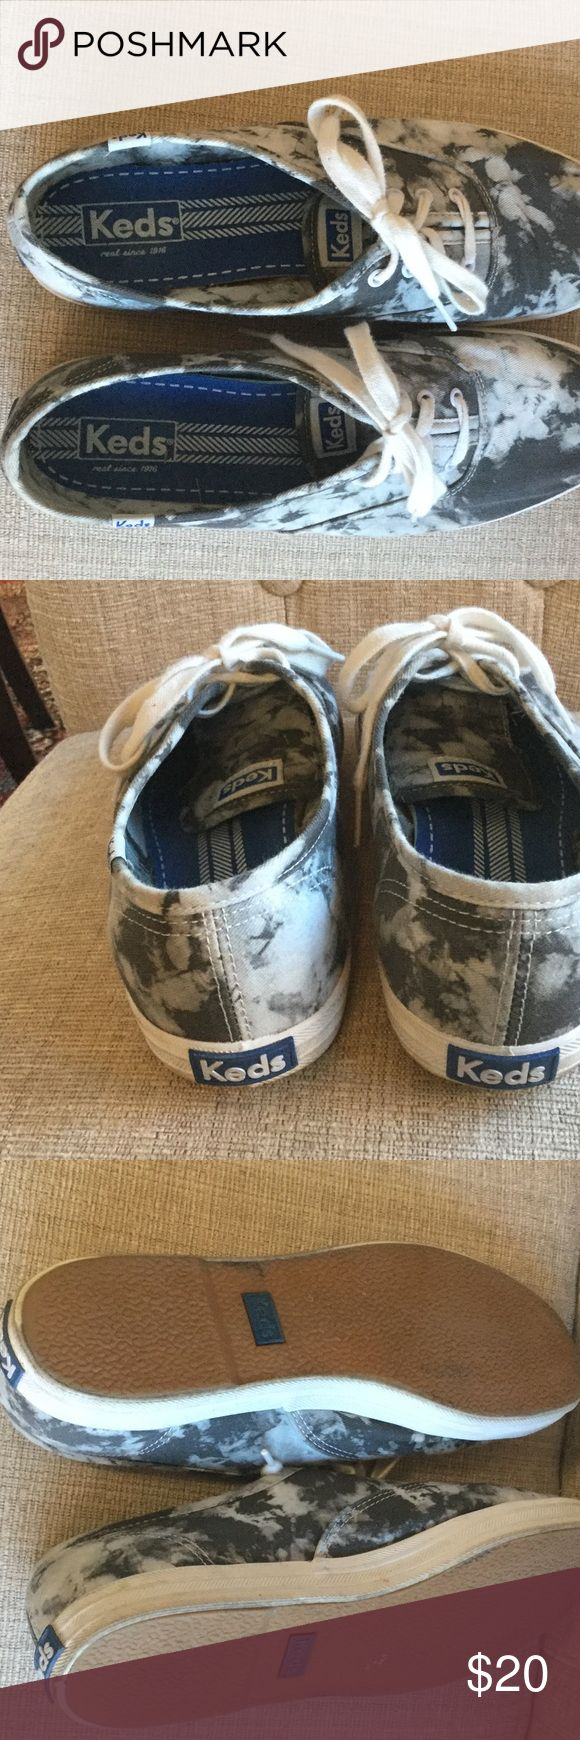 Keds sneakers Super cute Keds sneakers in a gray and white camouflage color Keds Shoes Sneakers